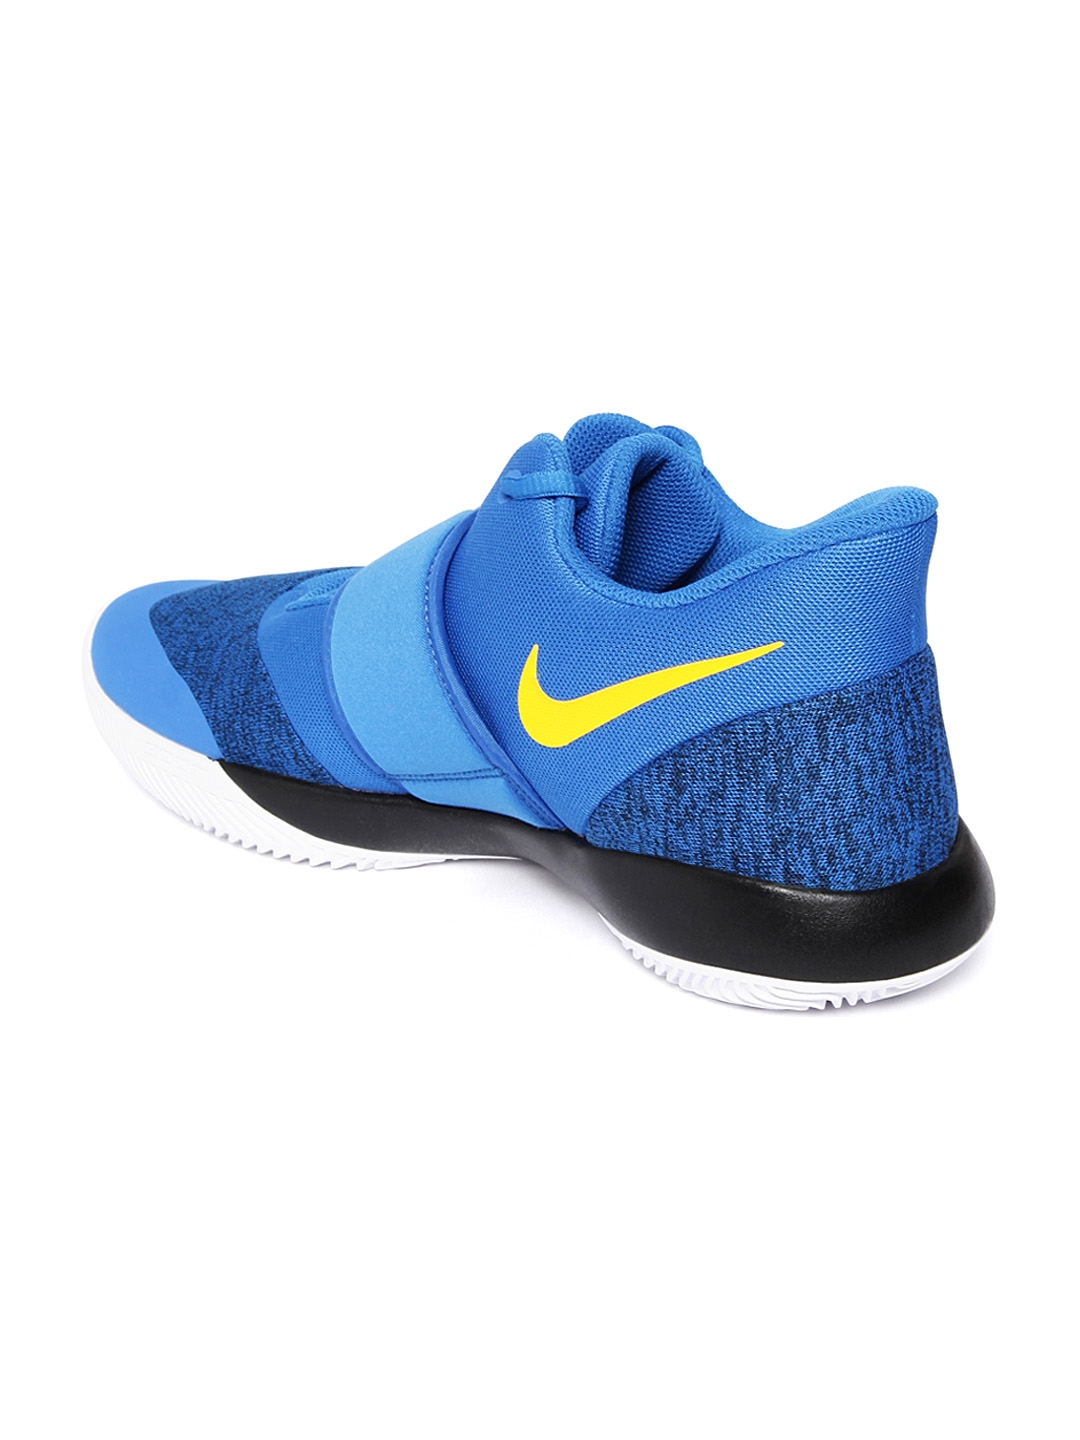 Buy Nike Men KD TREY 5 VI Blue Basketball Shoes - Sports Shoes for ... 821df650d